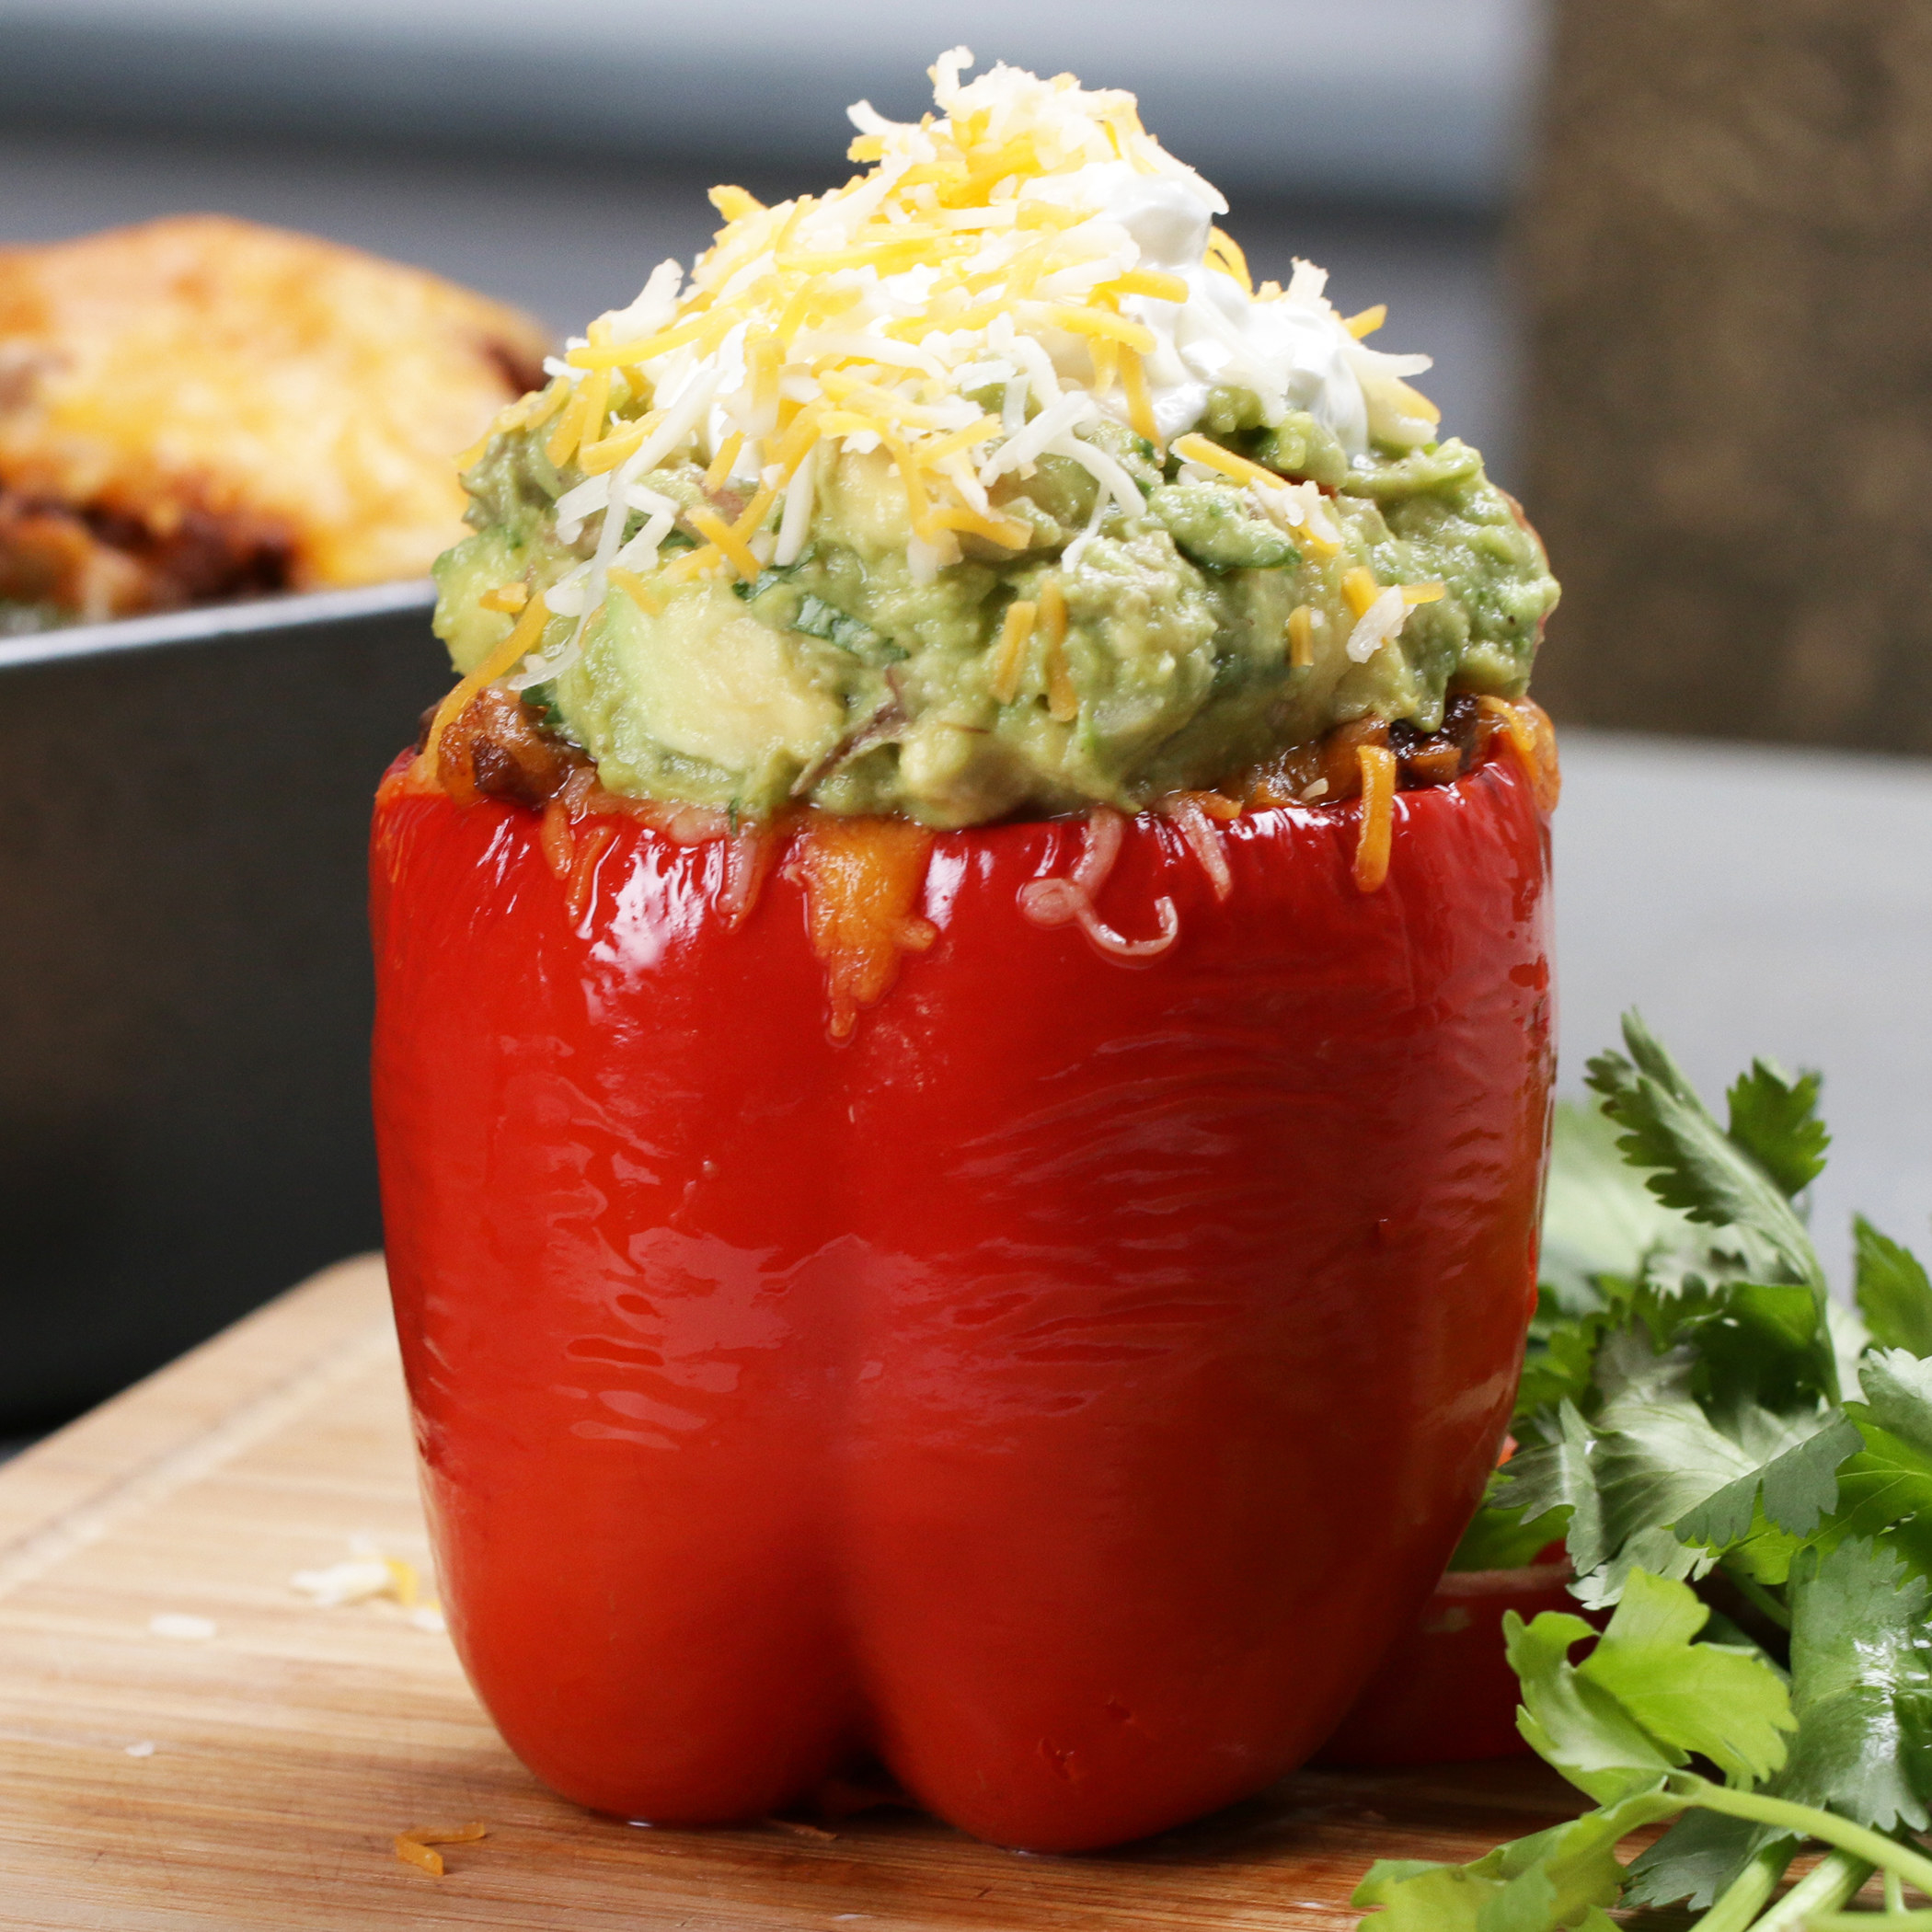 Stuffed red pepper topped with guacamole